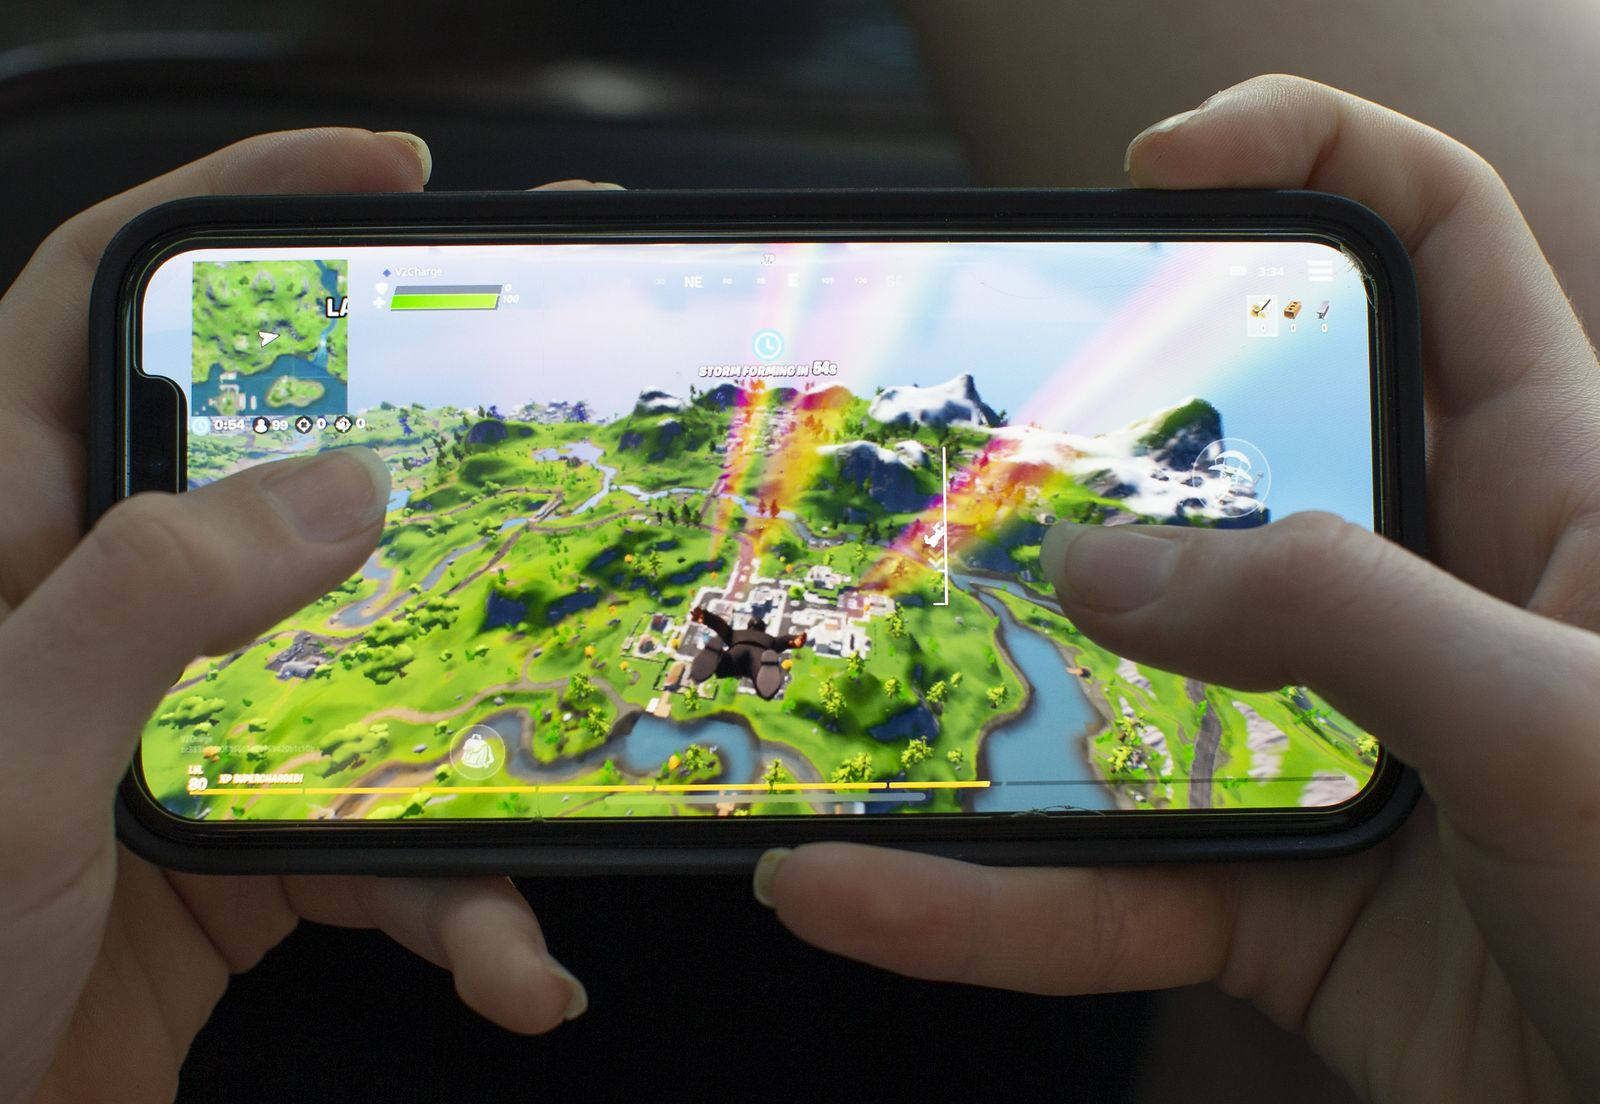 Epic Games Apple App Store dispute over Fortnite, Billerica, USA - 24 Aug 2020